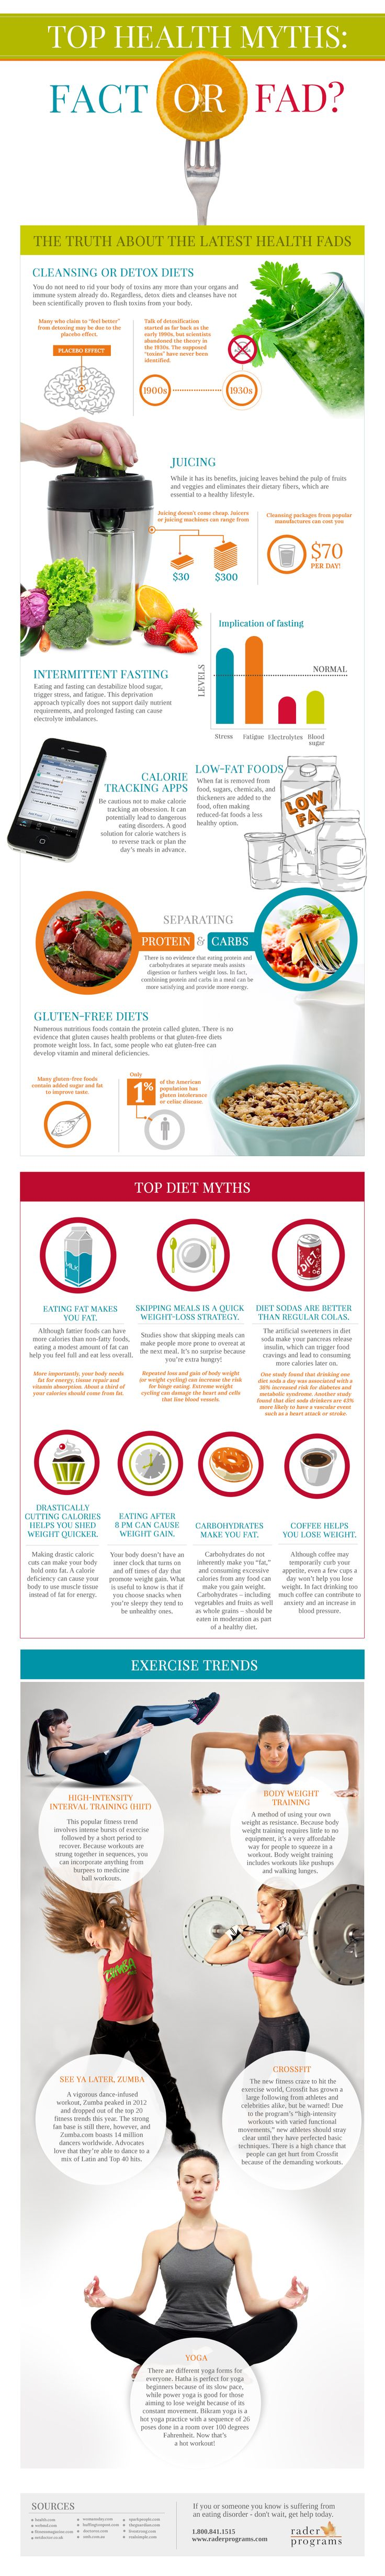 Top Health Myths: Fact or Fad? [Infographic]